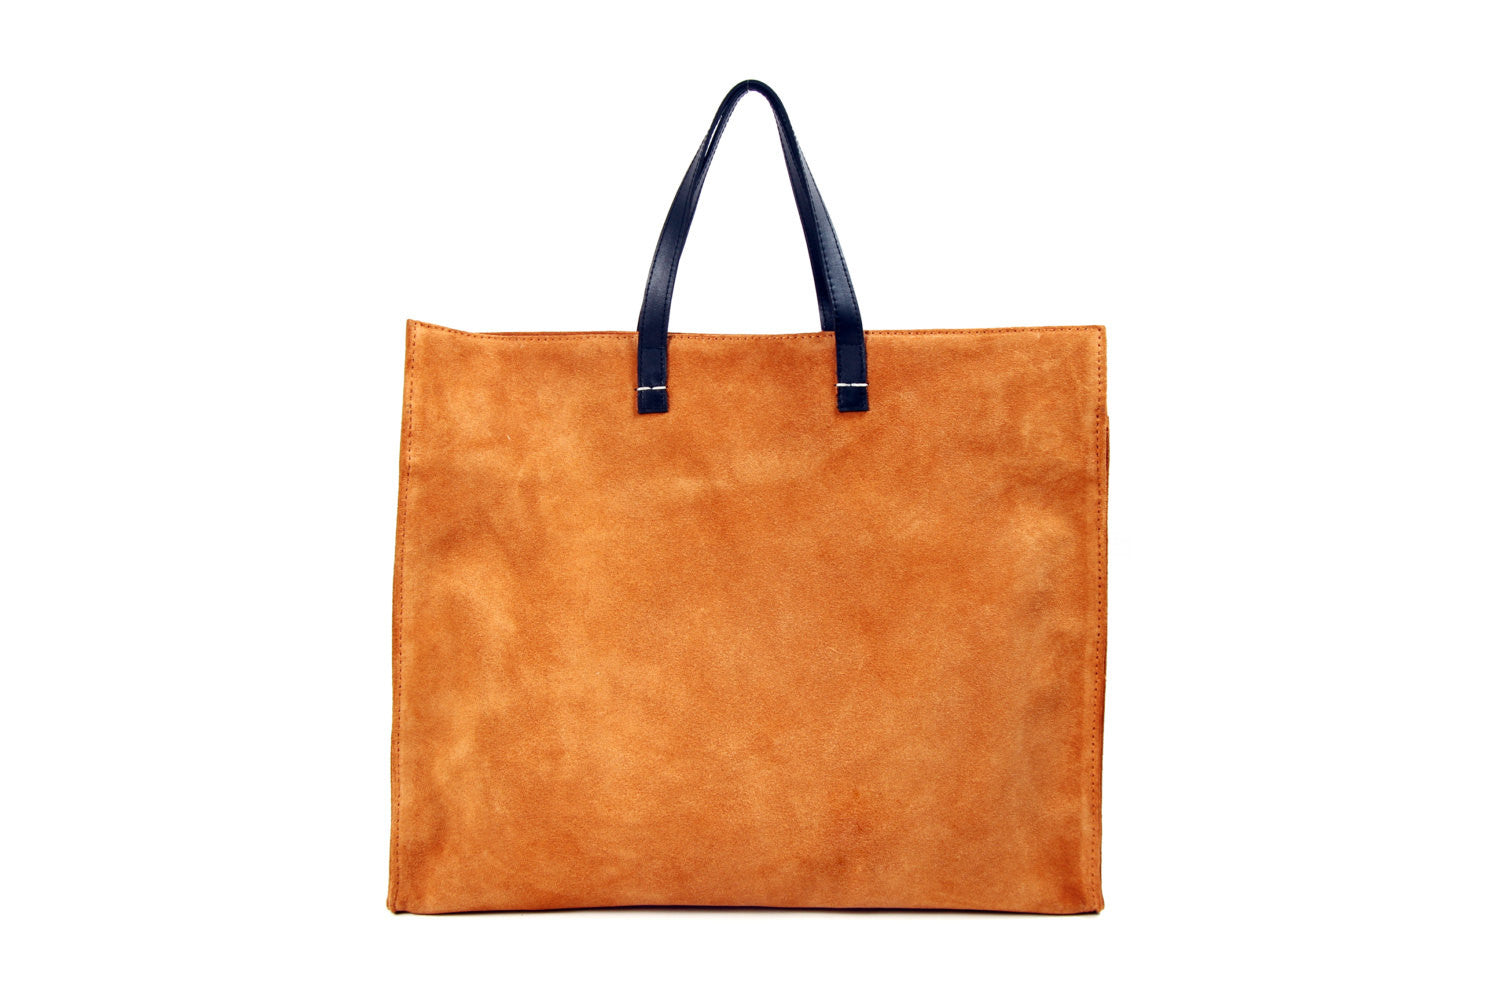 Tote; Bags and Purses; Leather Crossbody Tote; Shoulder Bag; Work Tote; Office Tote; Women's Handbag; Women's Tote; Tote Office Bag; Shoulder Office bag; Shoulder laptop Bag